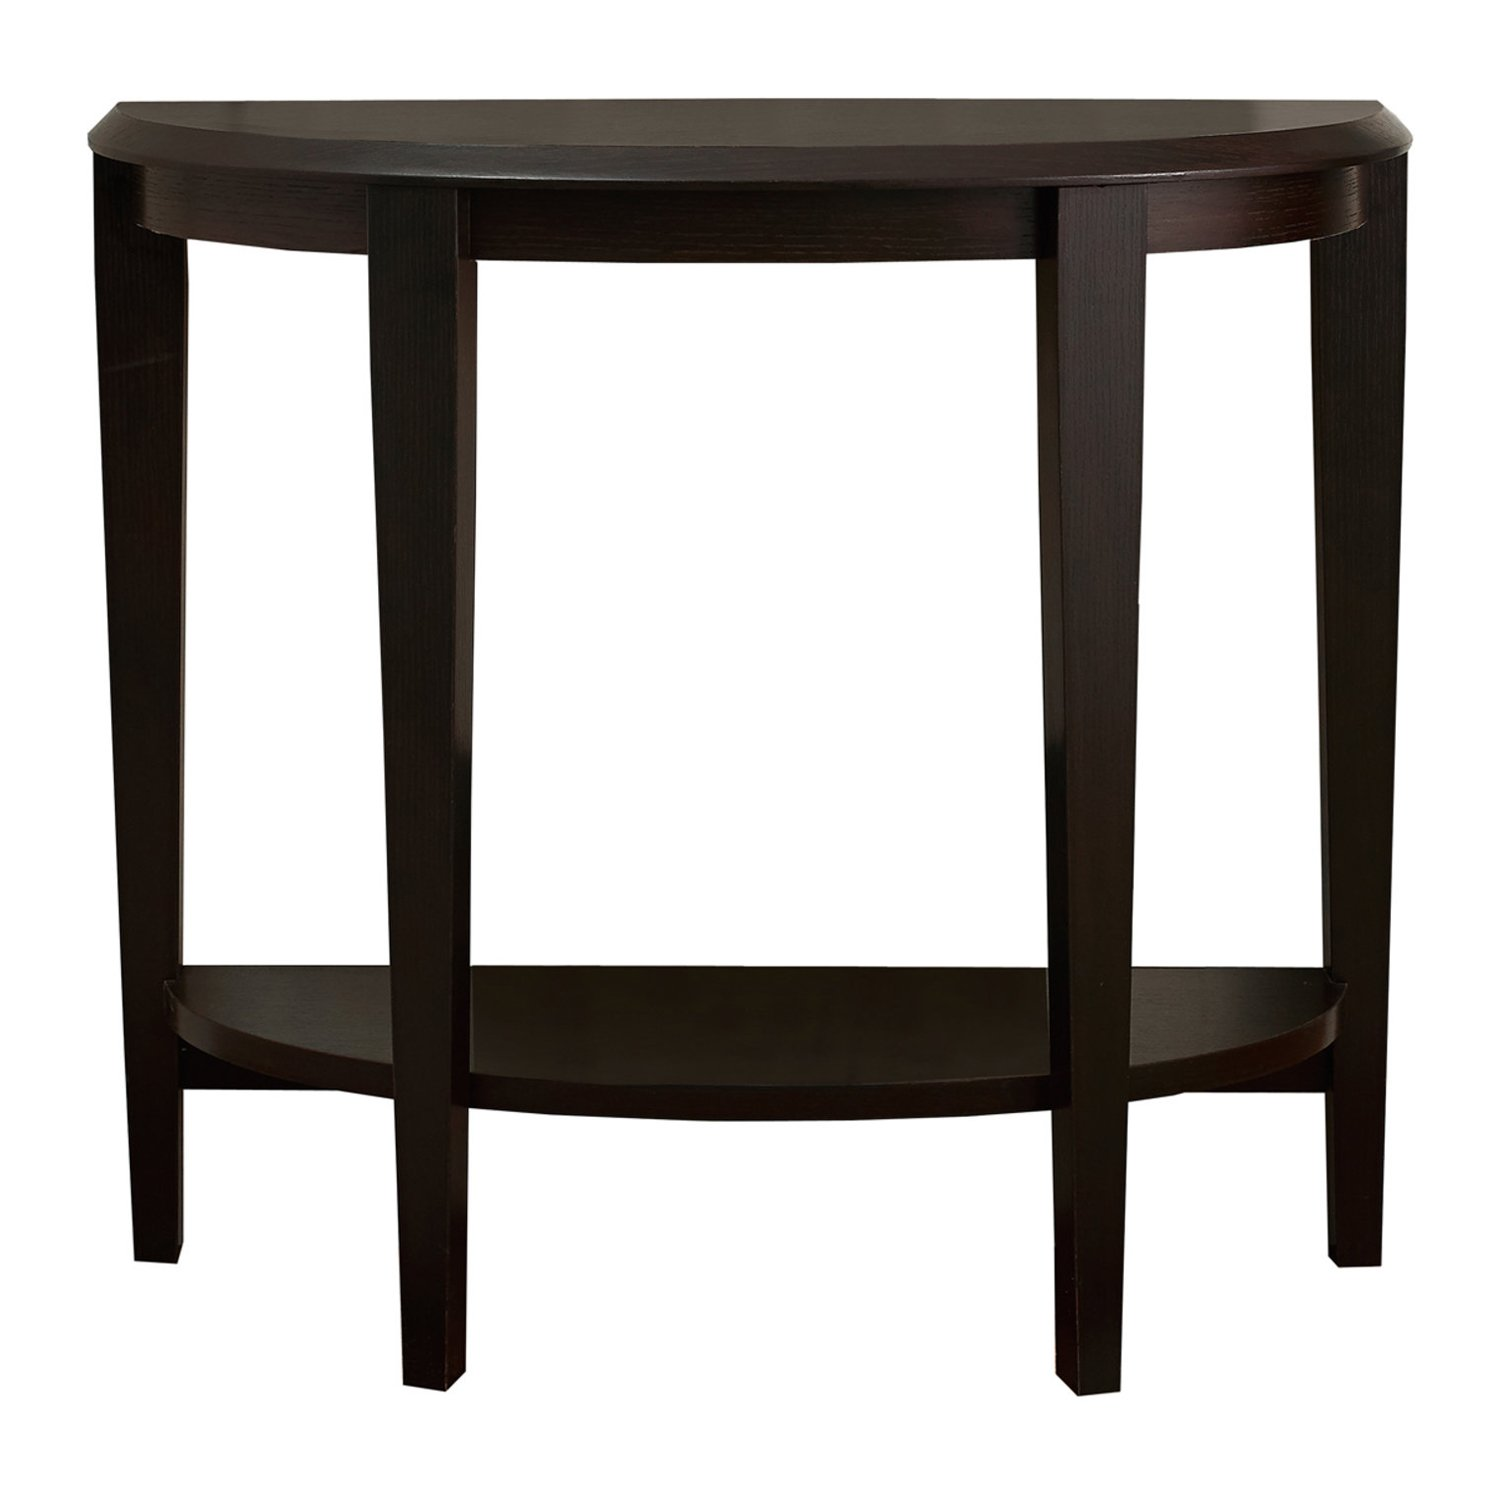 monarch specialties cappuccino hall console accent table inch kitchen dining cabinet legs black piece set counter height round pub tall with doors yellow dragonfly tiffany style